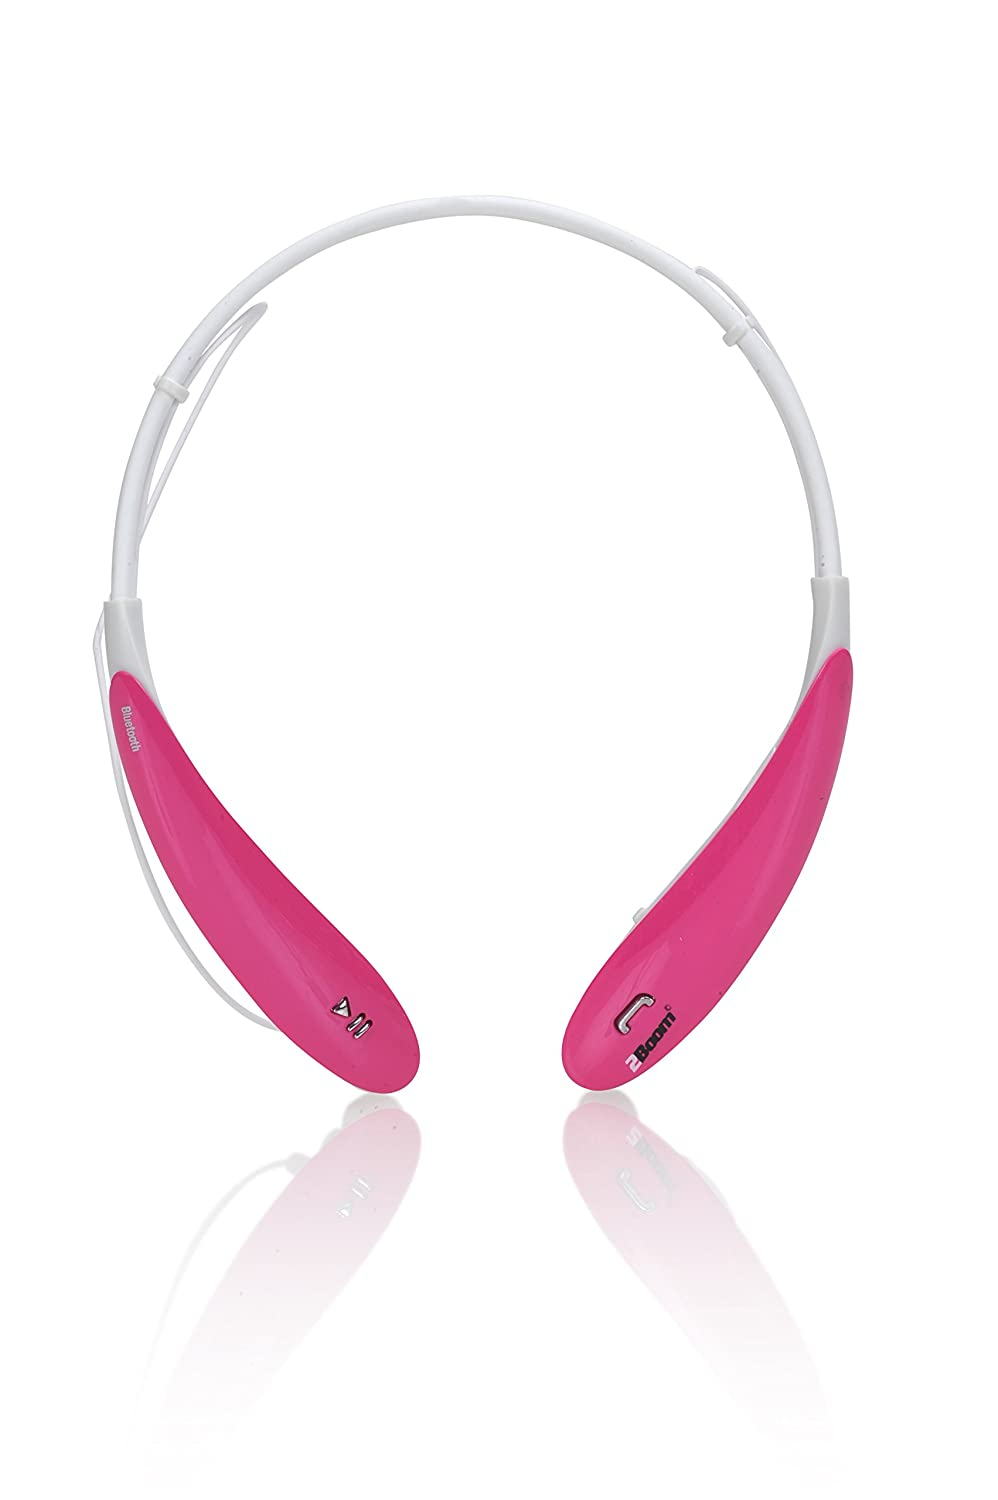 2Boom Bluetooth Earbuds, HiFi Wireless Sport Stereo Headset in Pink/White